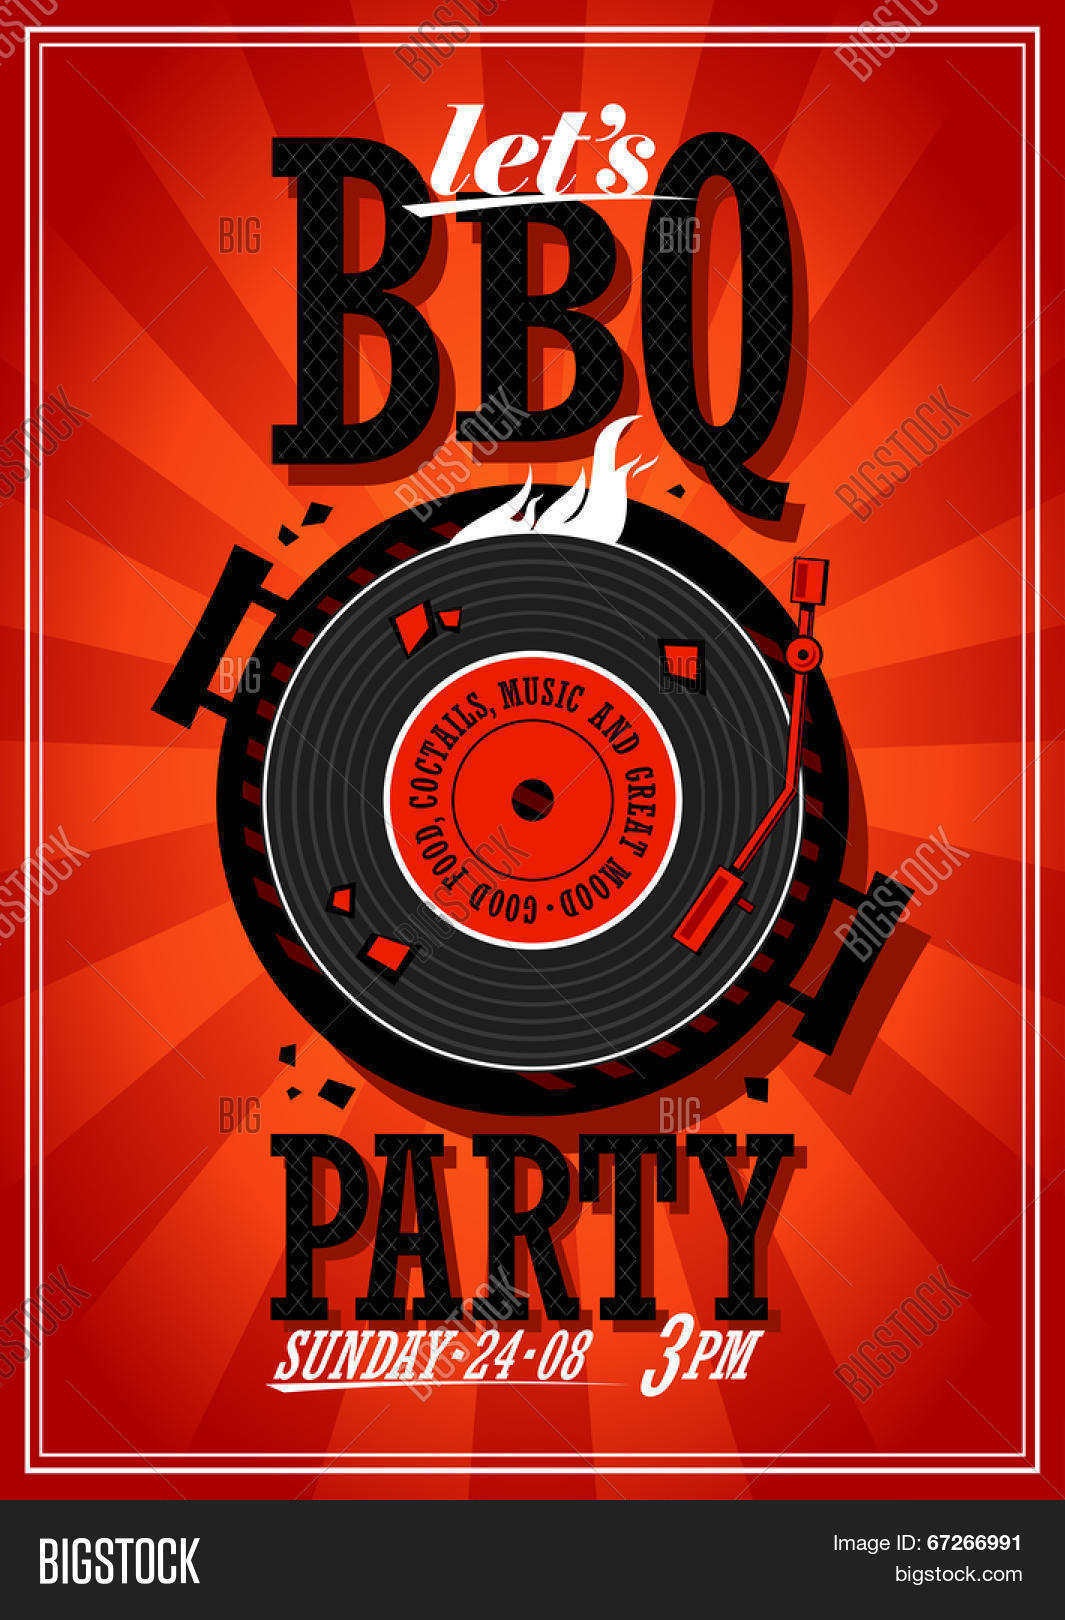 bbq party design vector photo free trial bigstock